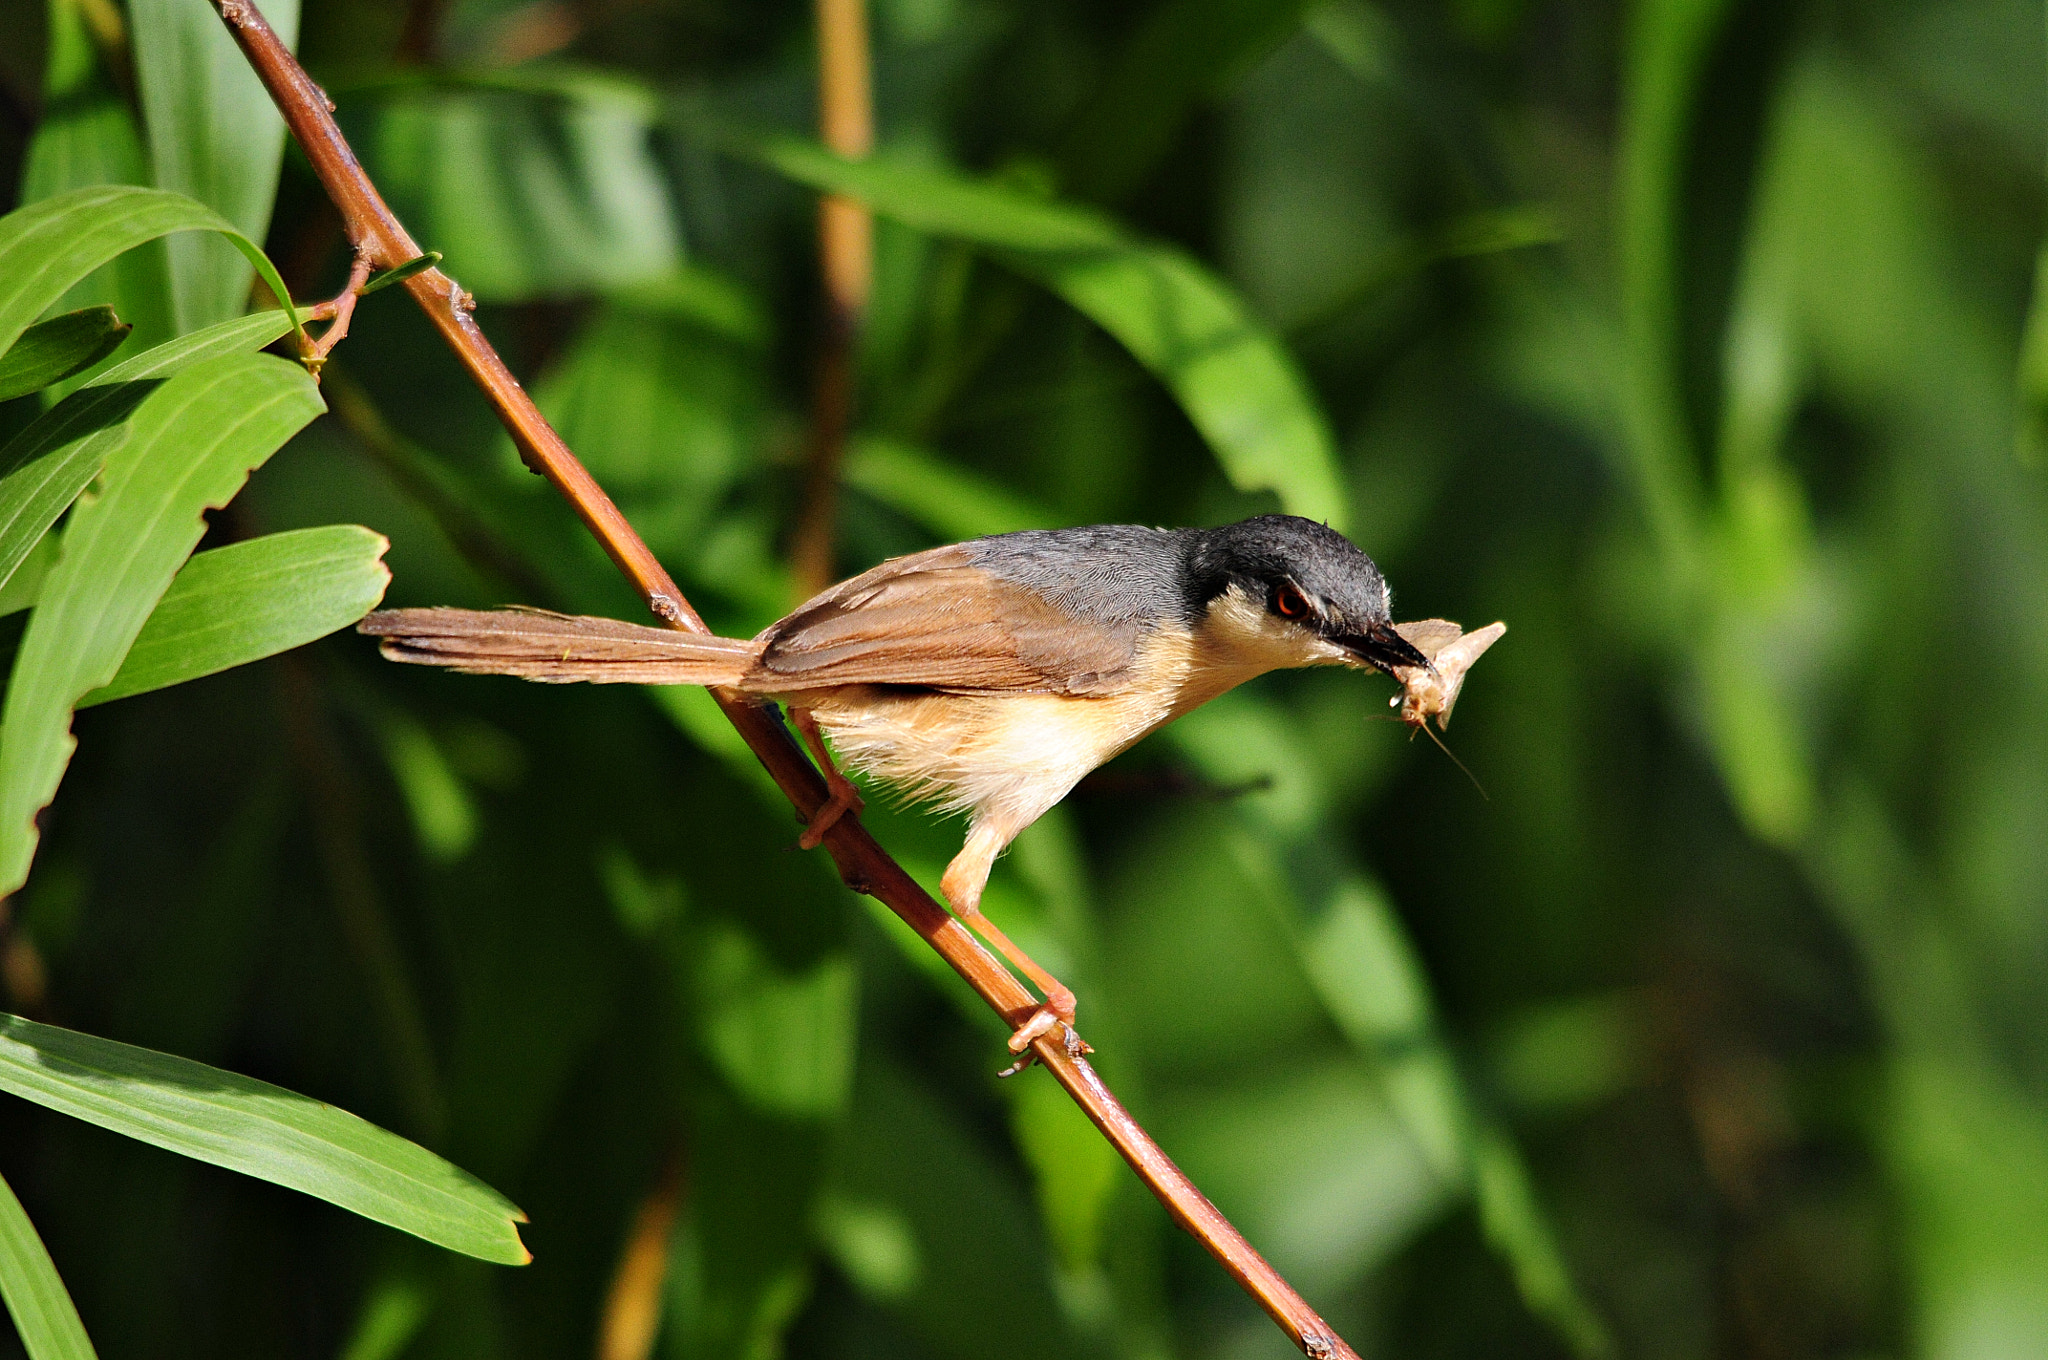 Photograph Ashy Prinia Catches The Moth by dhiraj gaurh on 500px